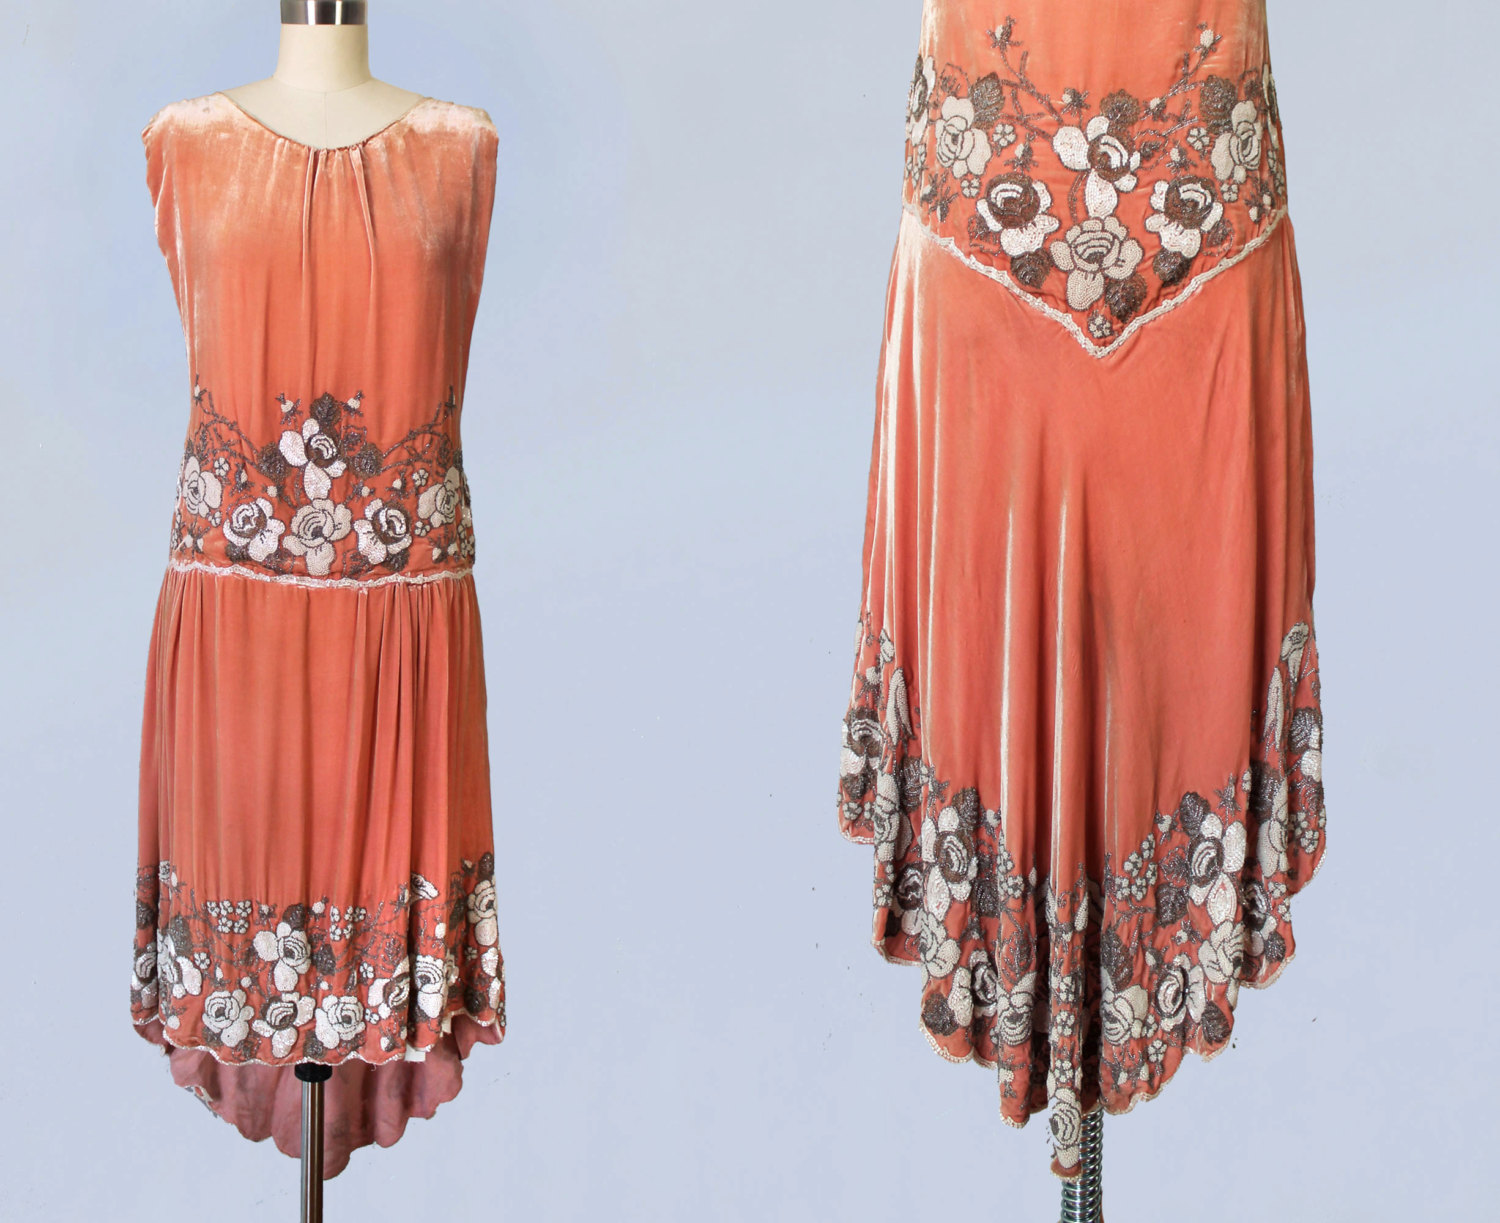 Pink cotton velvet dress with beading. 1920s.